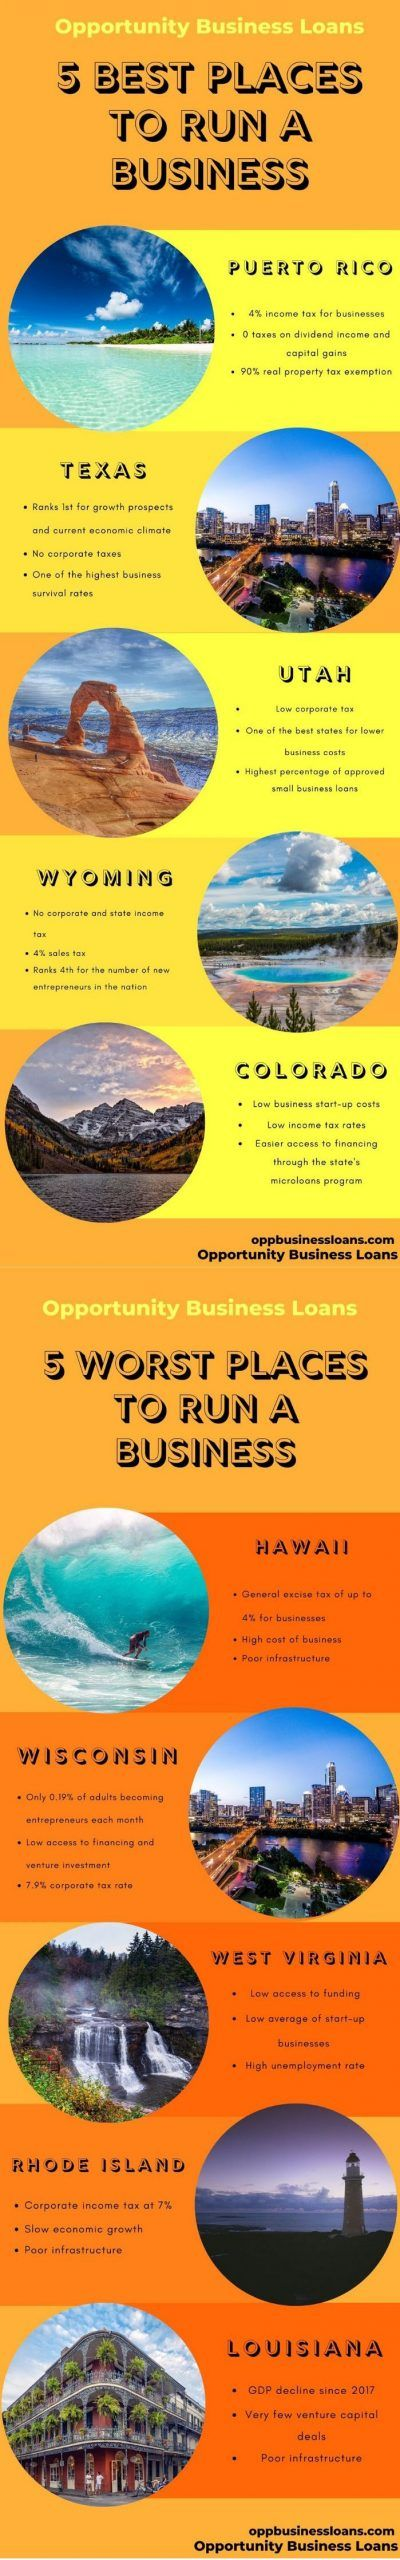 The 5 Best And Worst Places In America To Run A Business According To The U S Bureau Of Labor Statistics Business Infographic Places In America Infographic